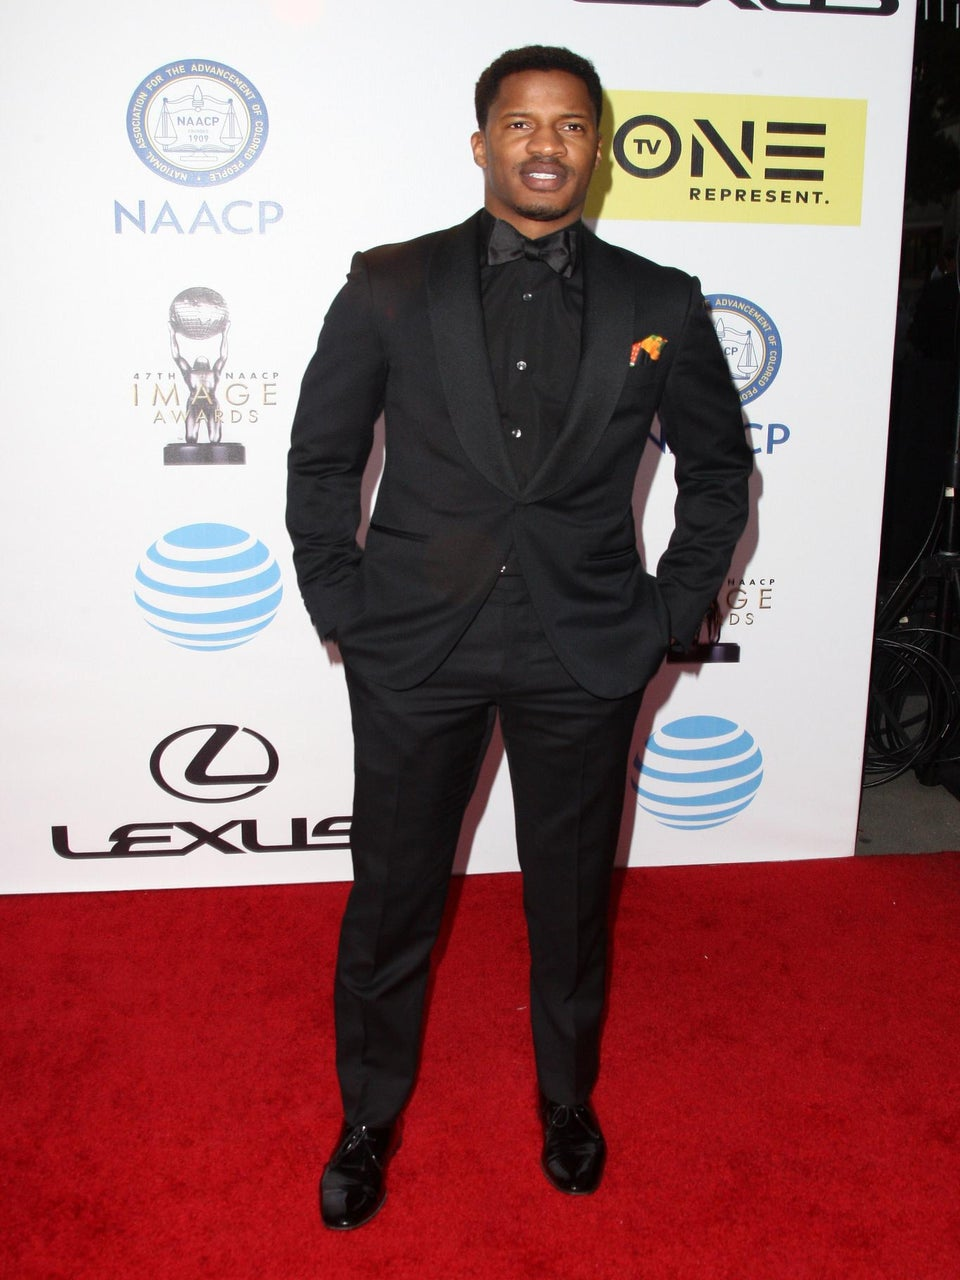 Nate Parker Addresses College Rape Accusations Ahead of 'The Birth of a Nation' Release